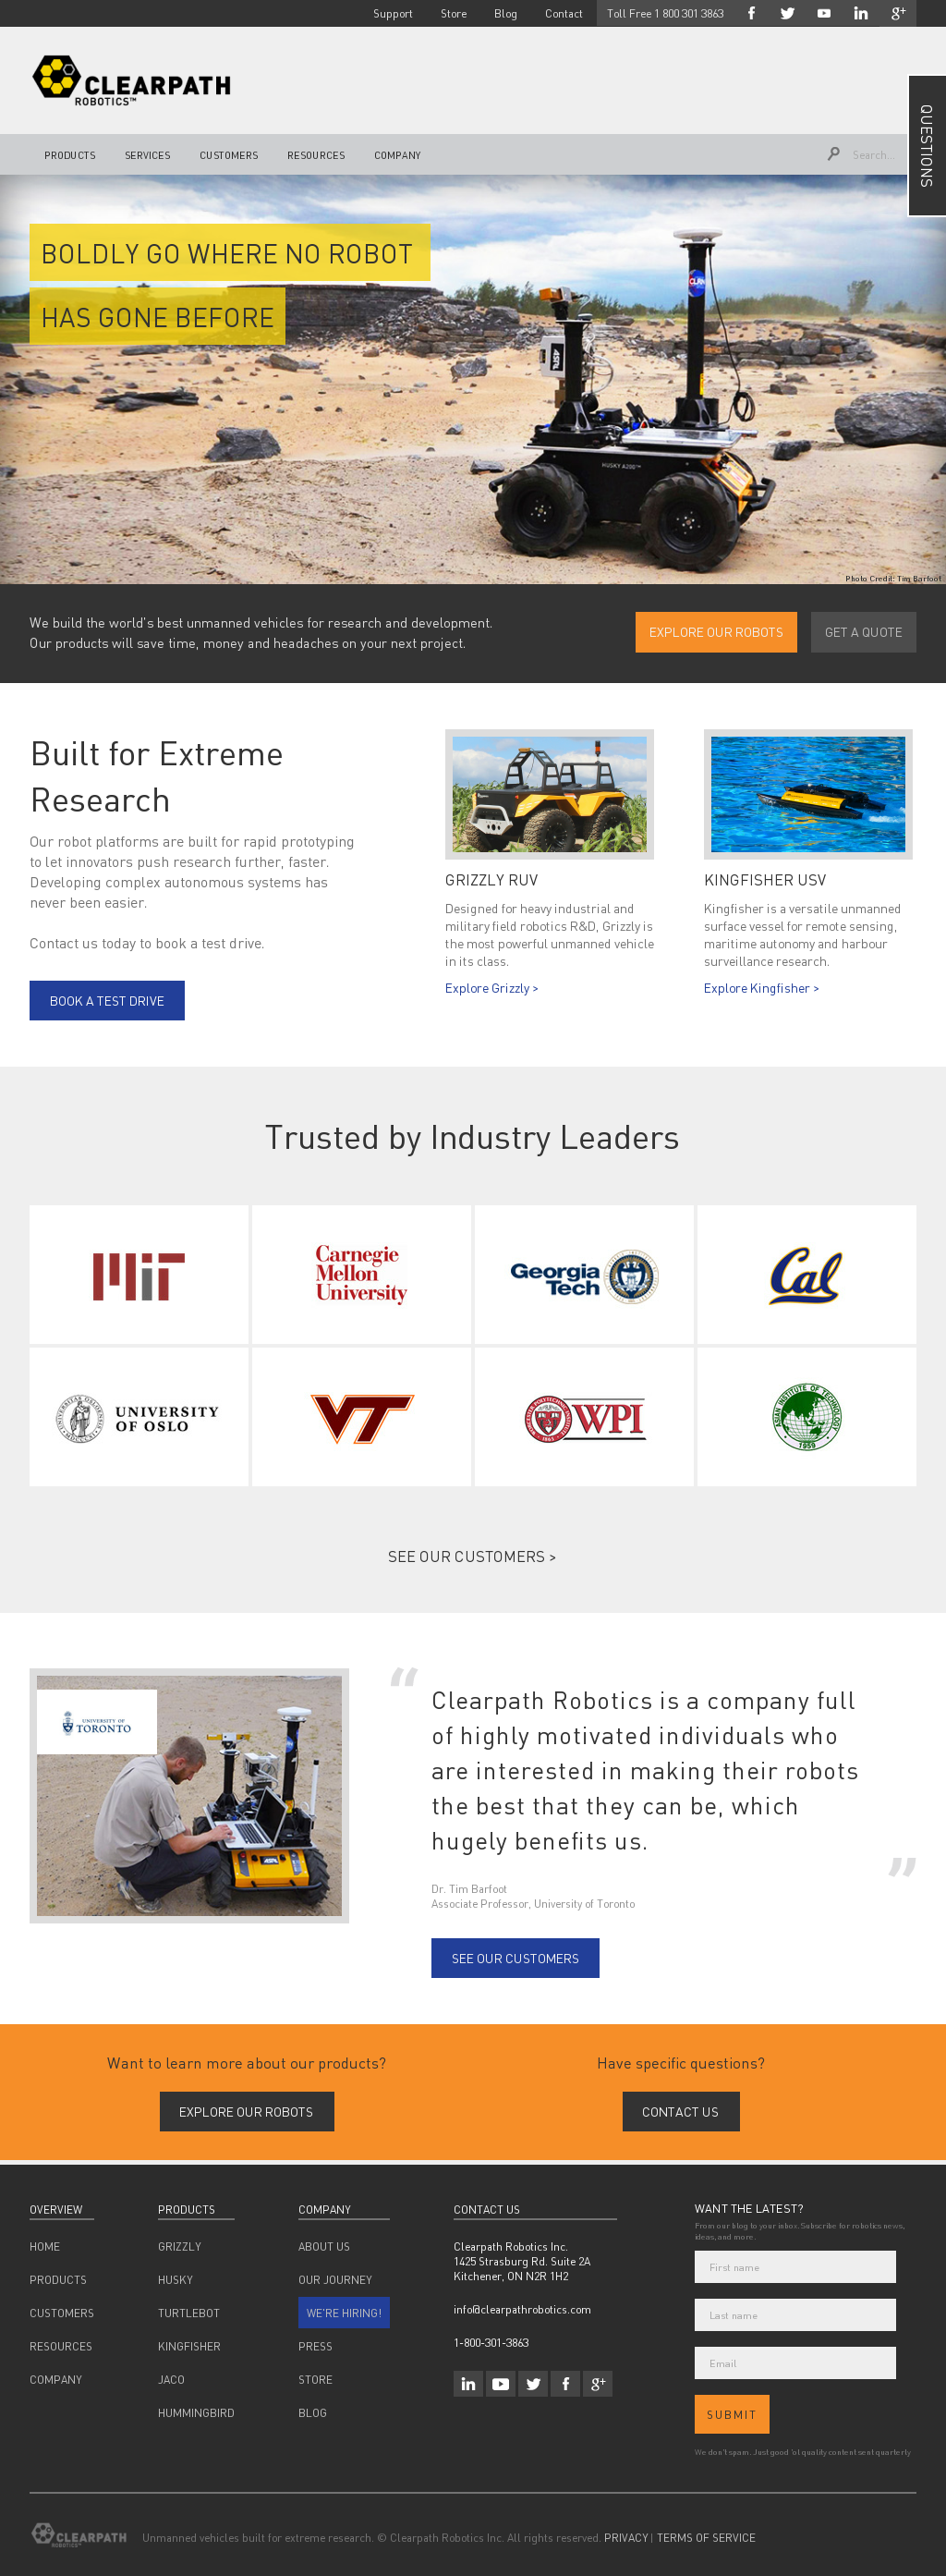 Clearpath Robotics Competitors, Revenue and Employees